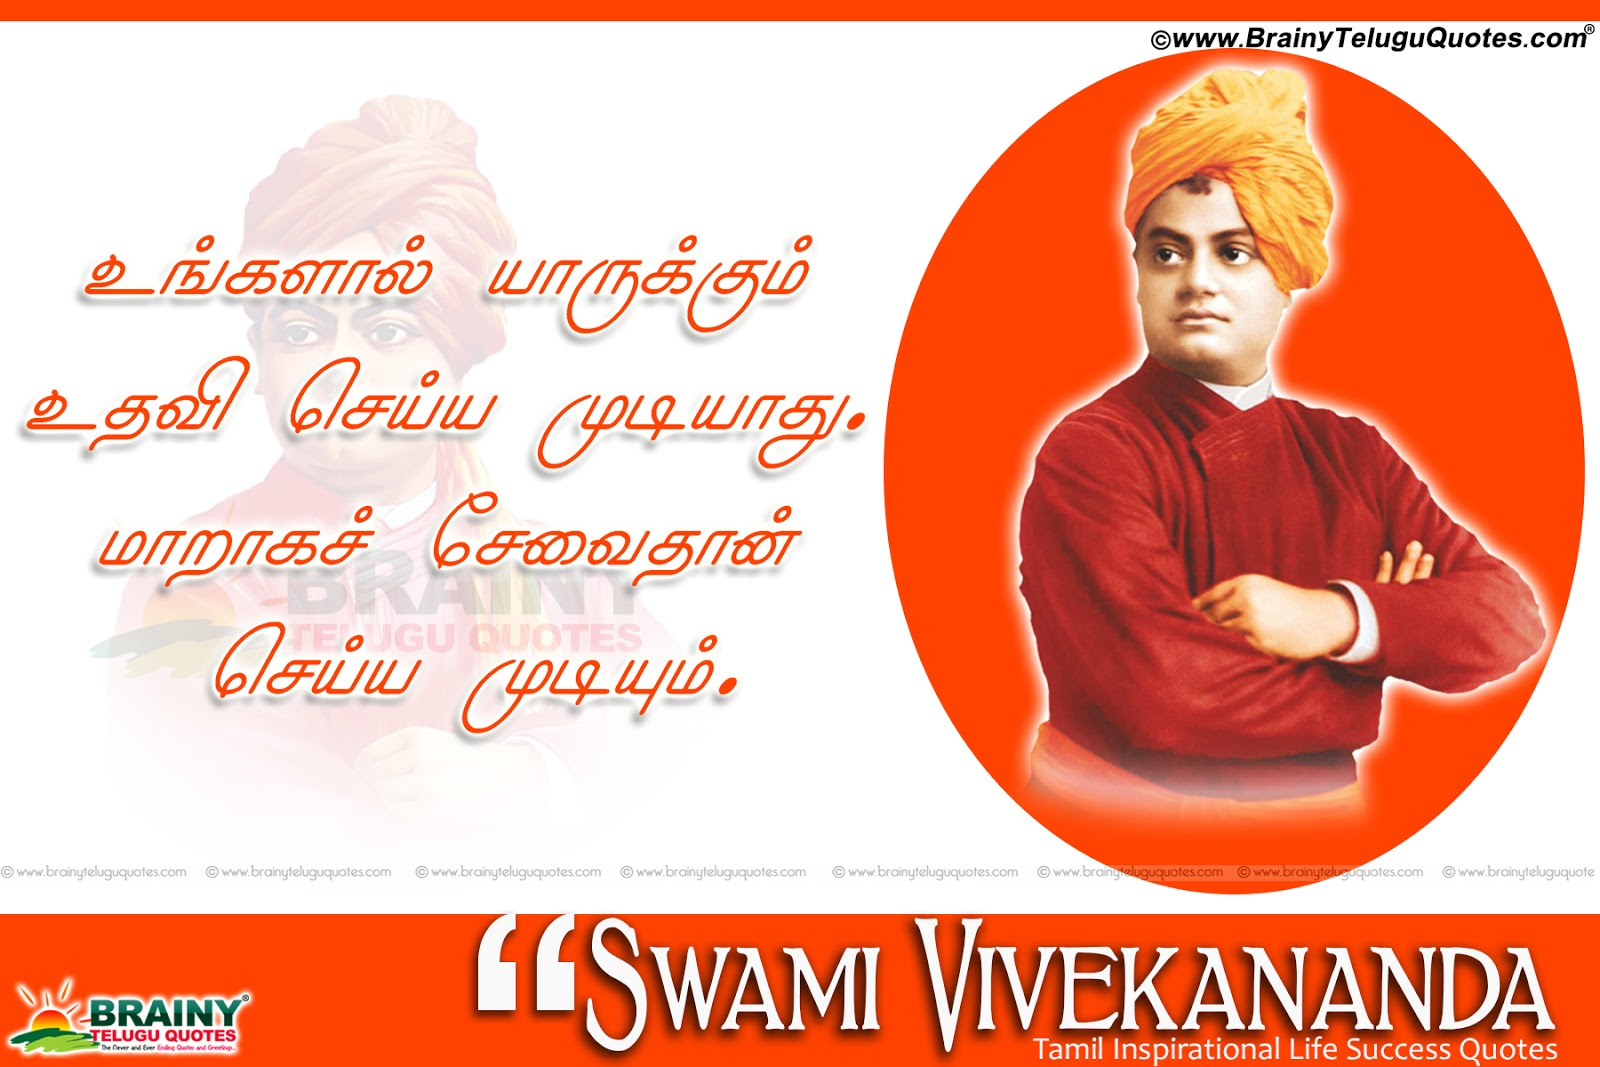 Swami Vivekananda Quotes In Tamil